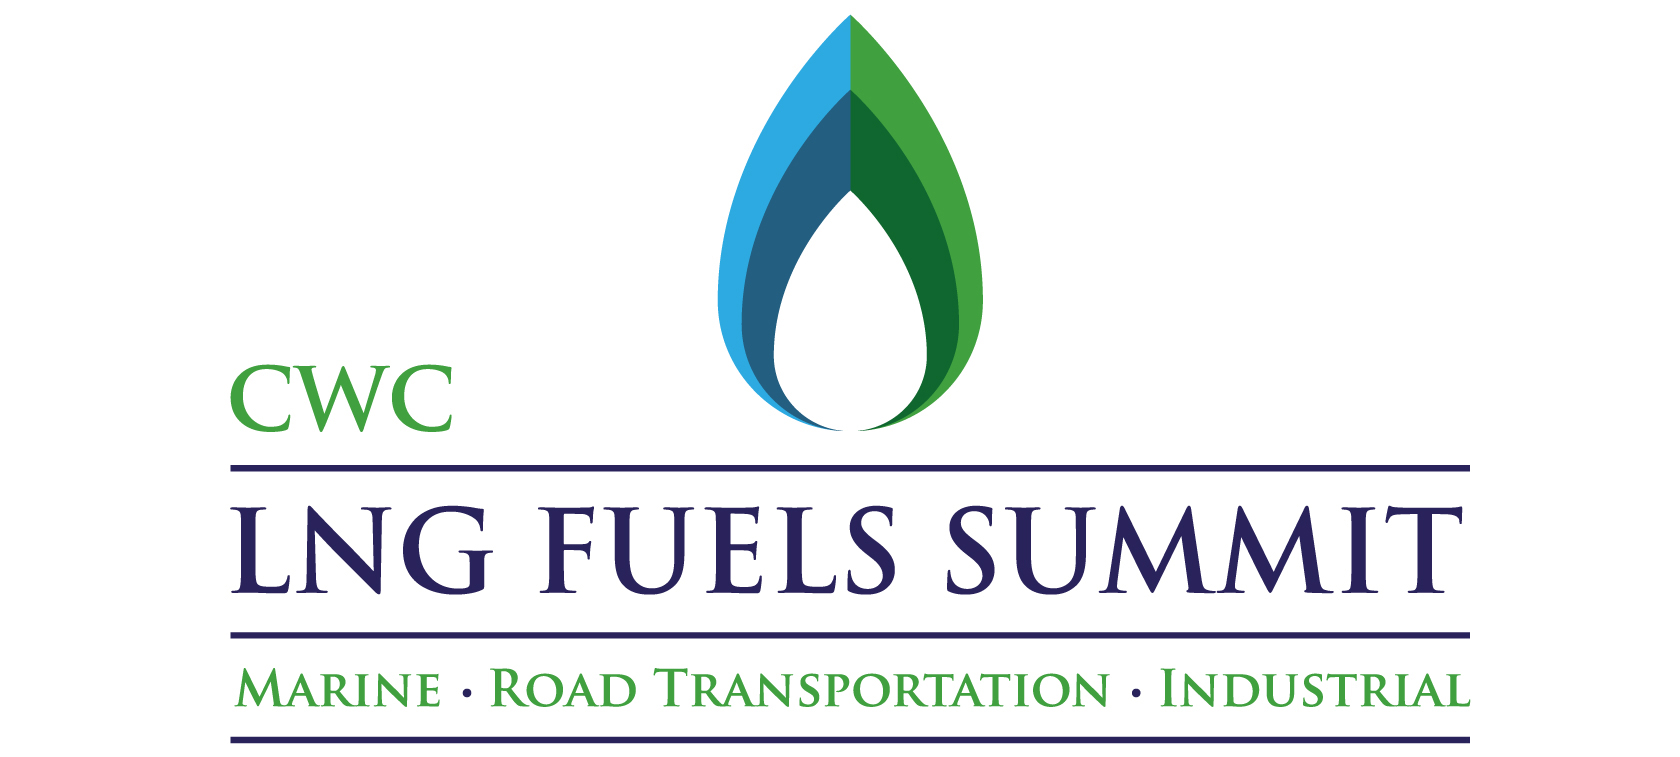 Programme for CWC LNG Fuels Summit Announced